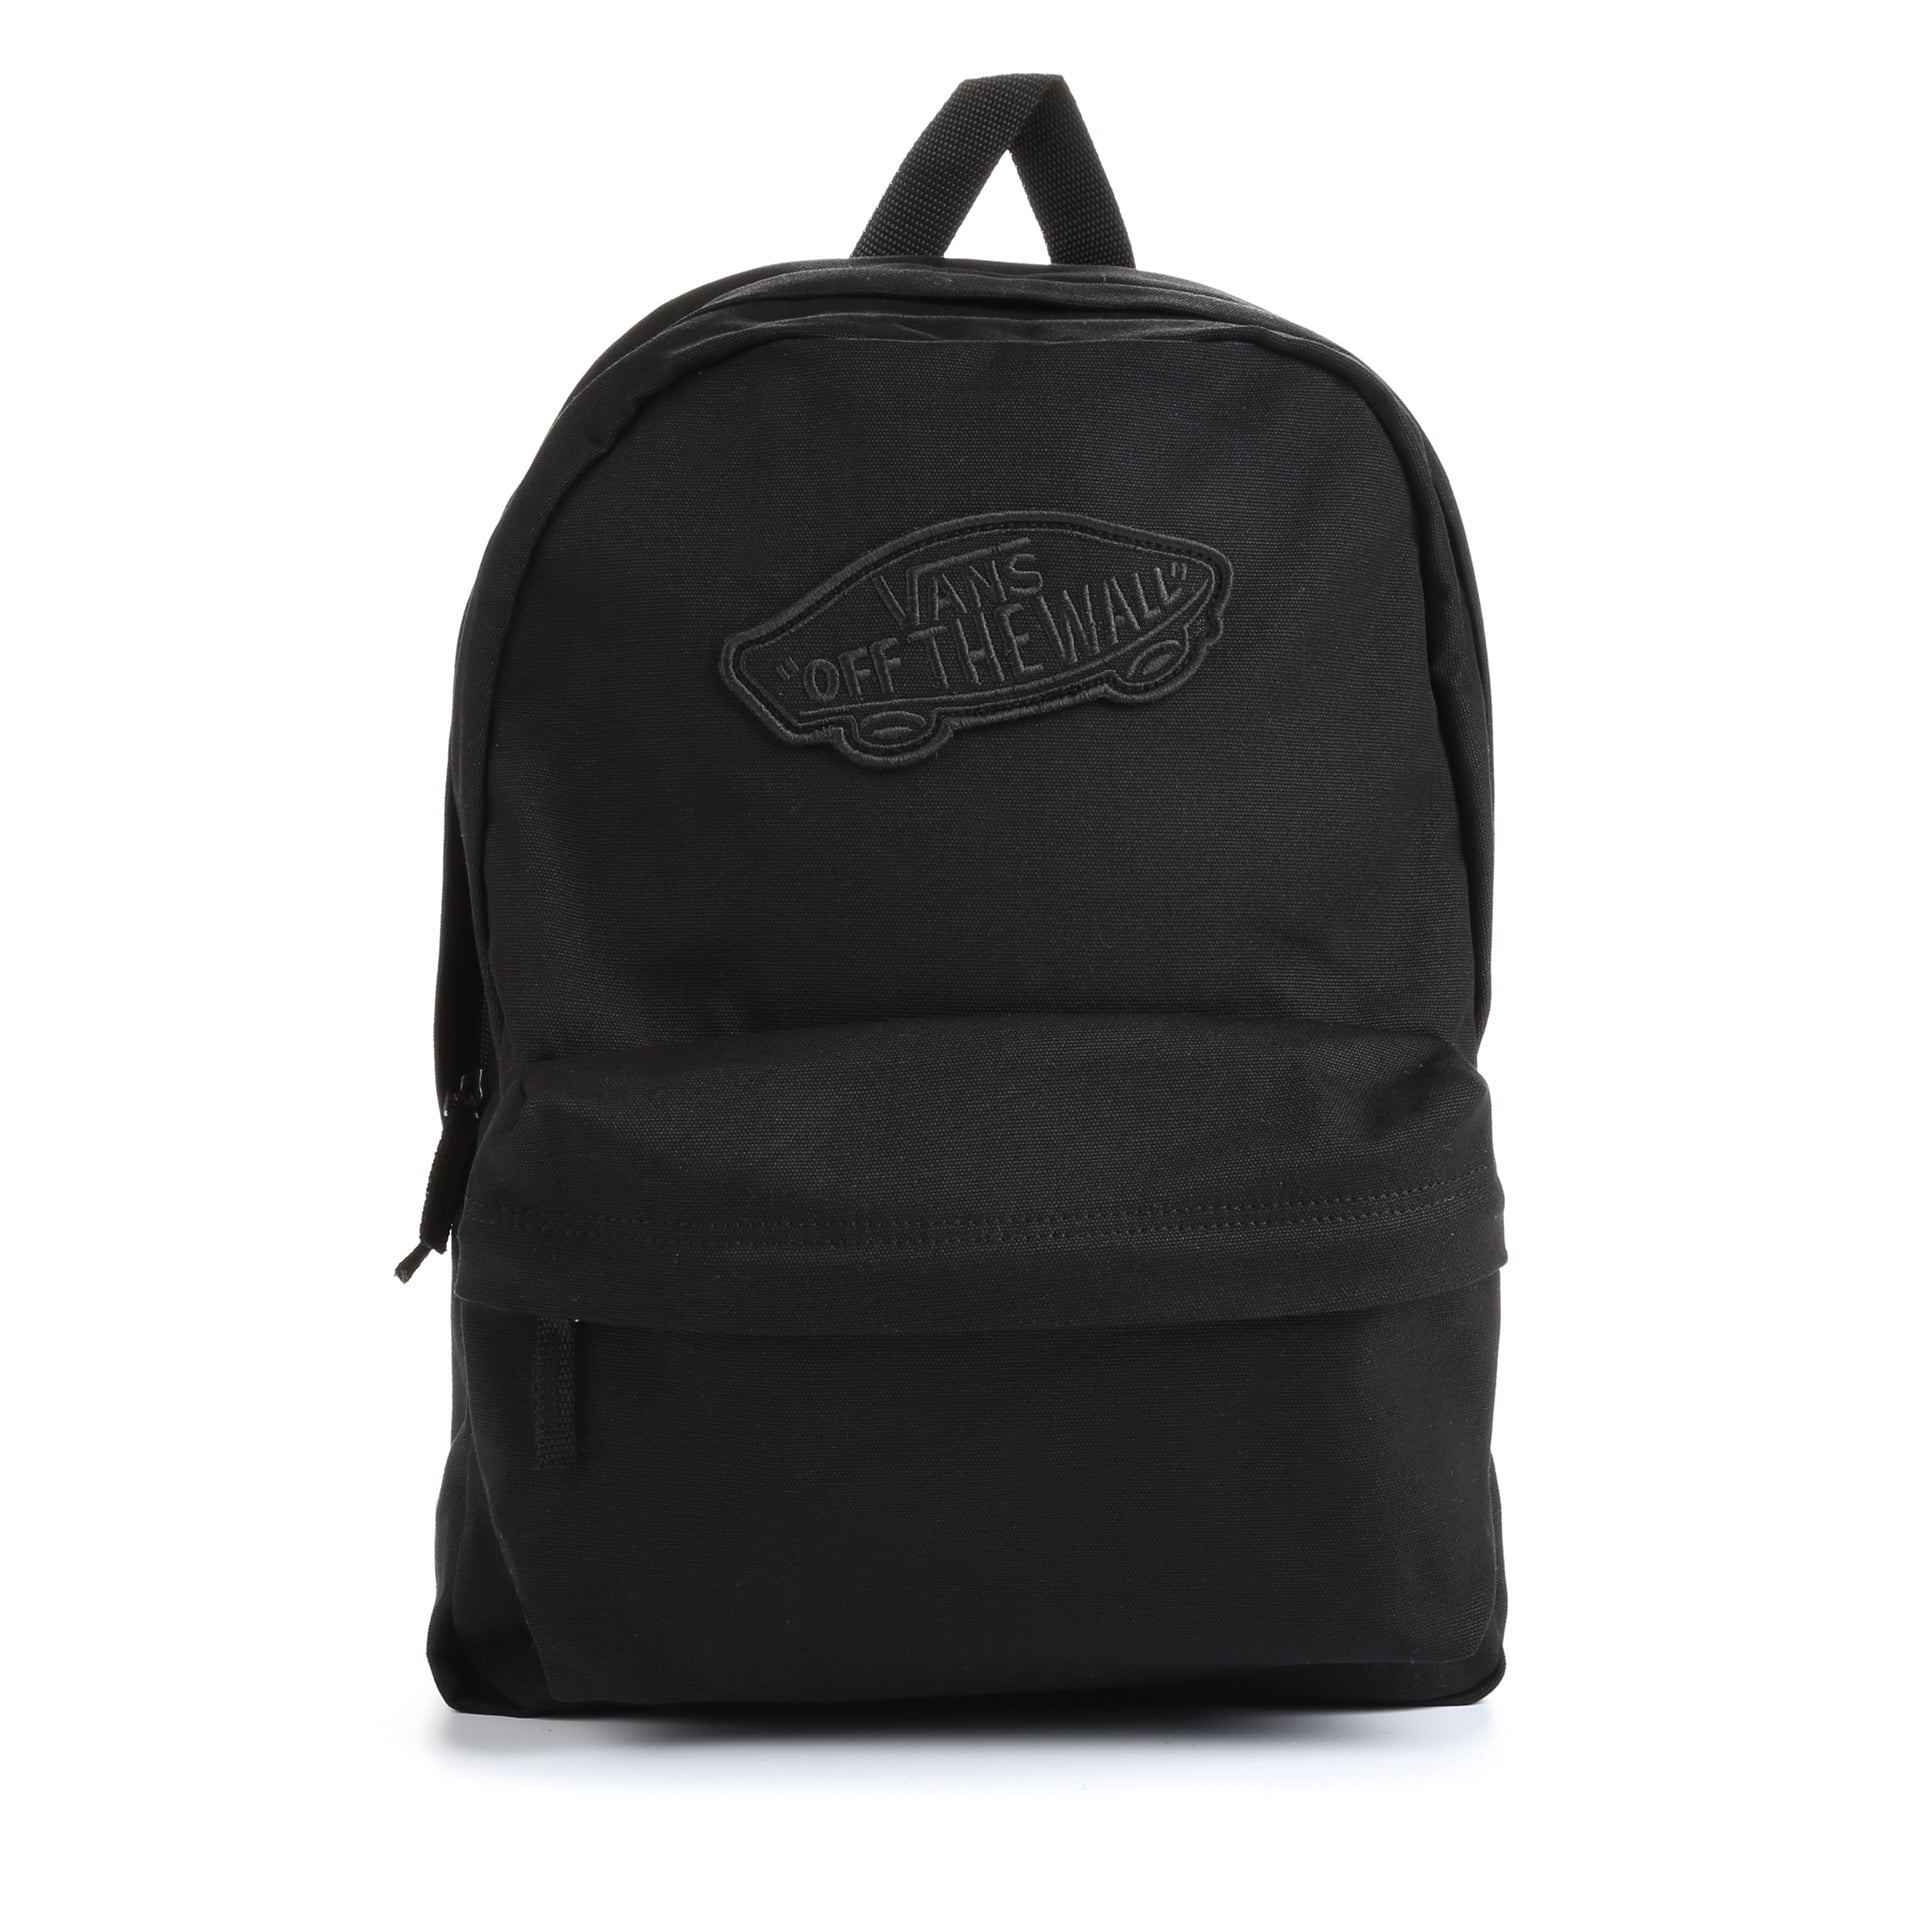 7bf368305b Vans Realm Backpack - Black - New Star